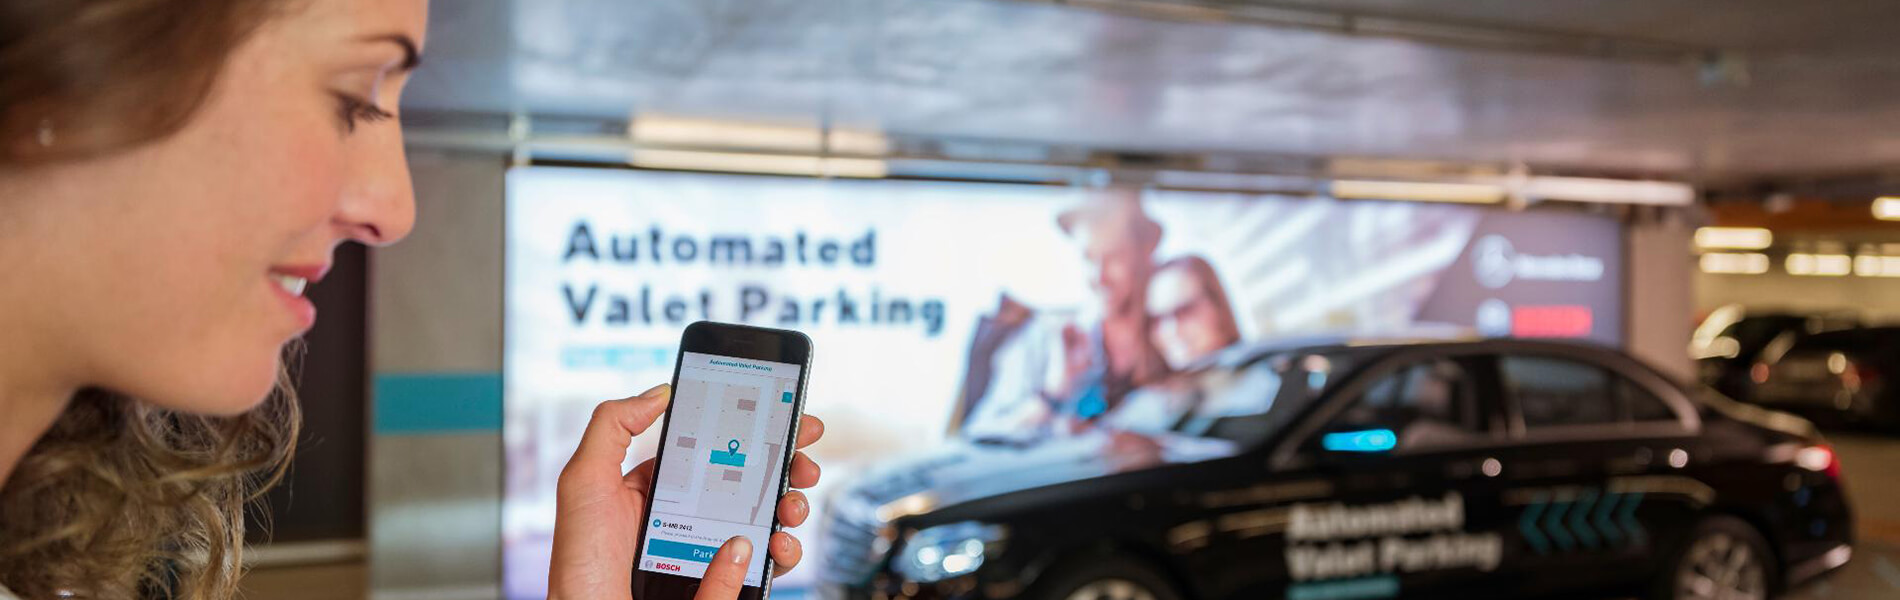 Automated Valet Parking – In the parking garage, the car itself seeks a parking space